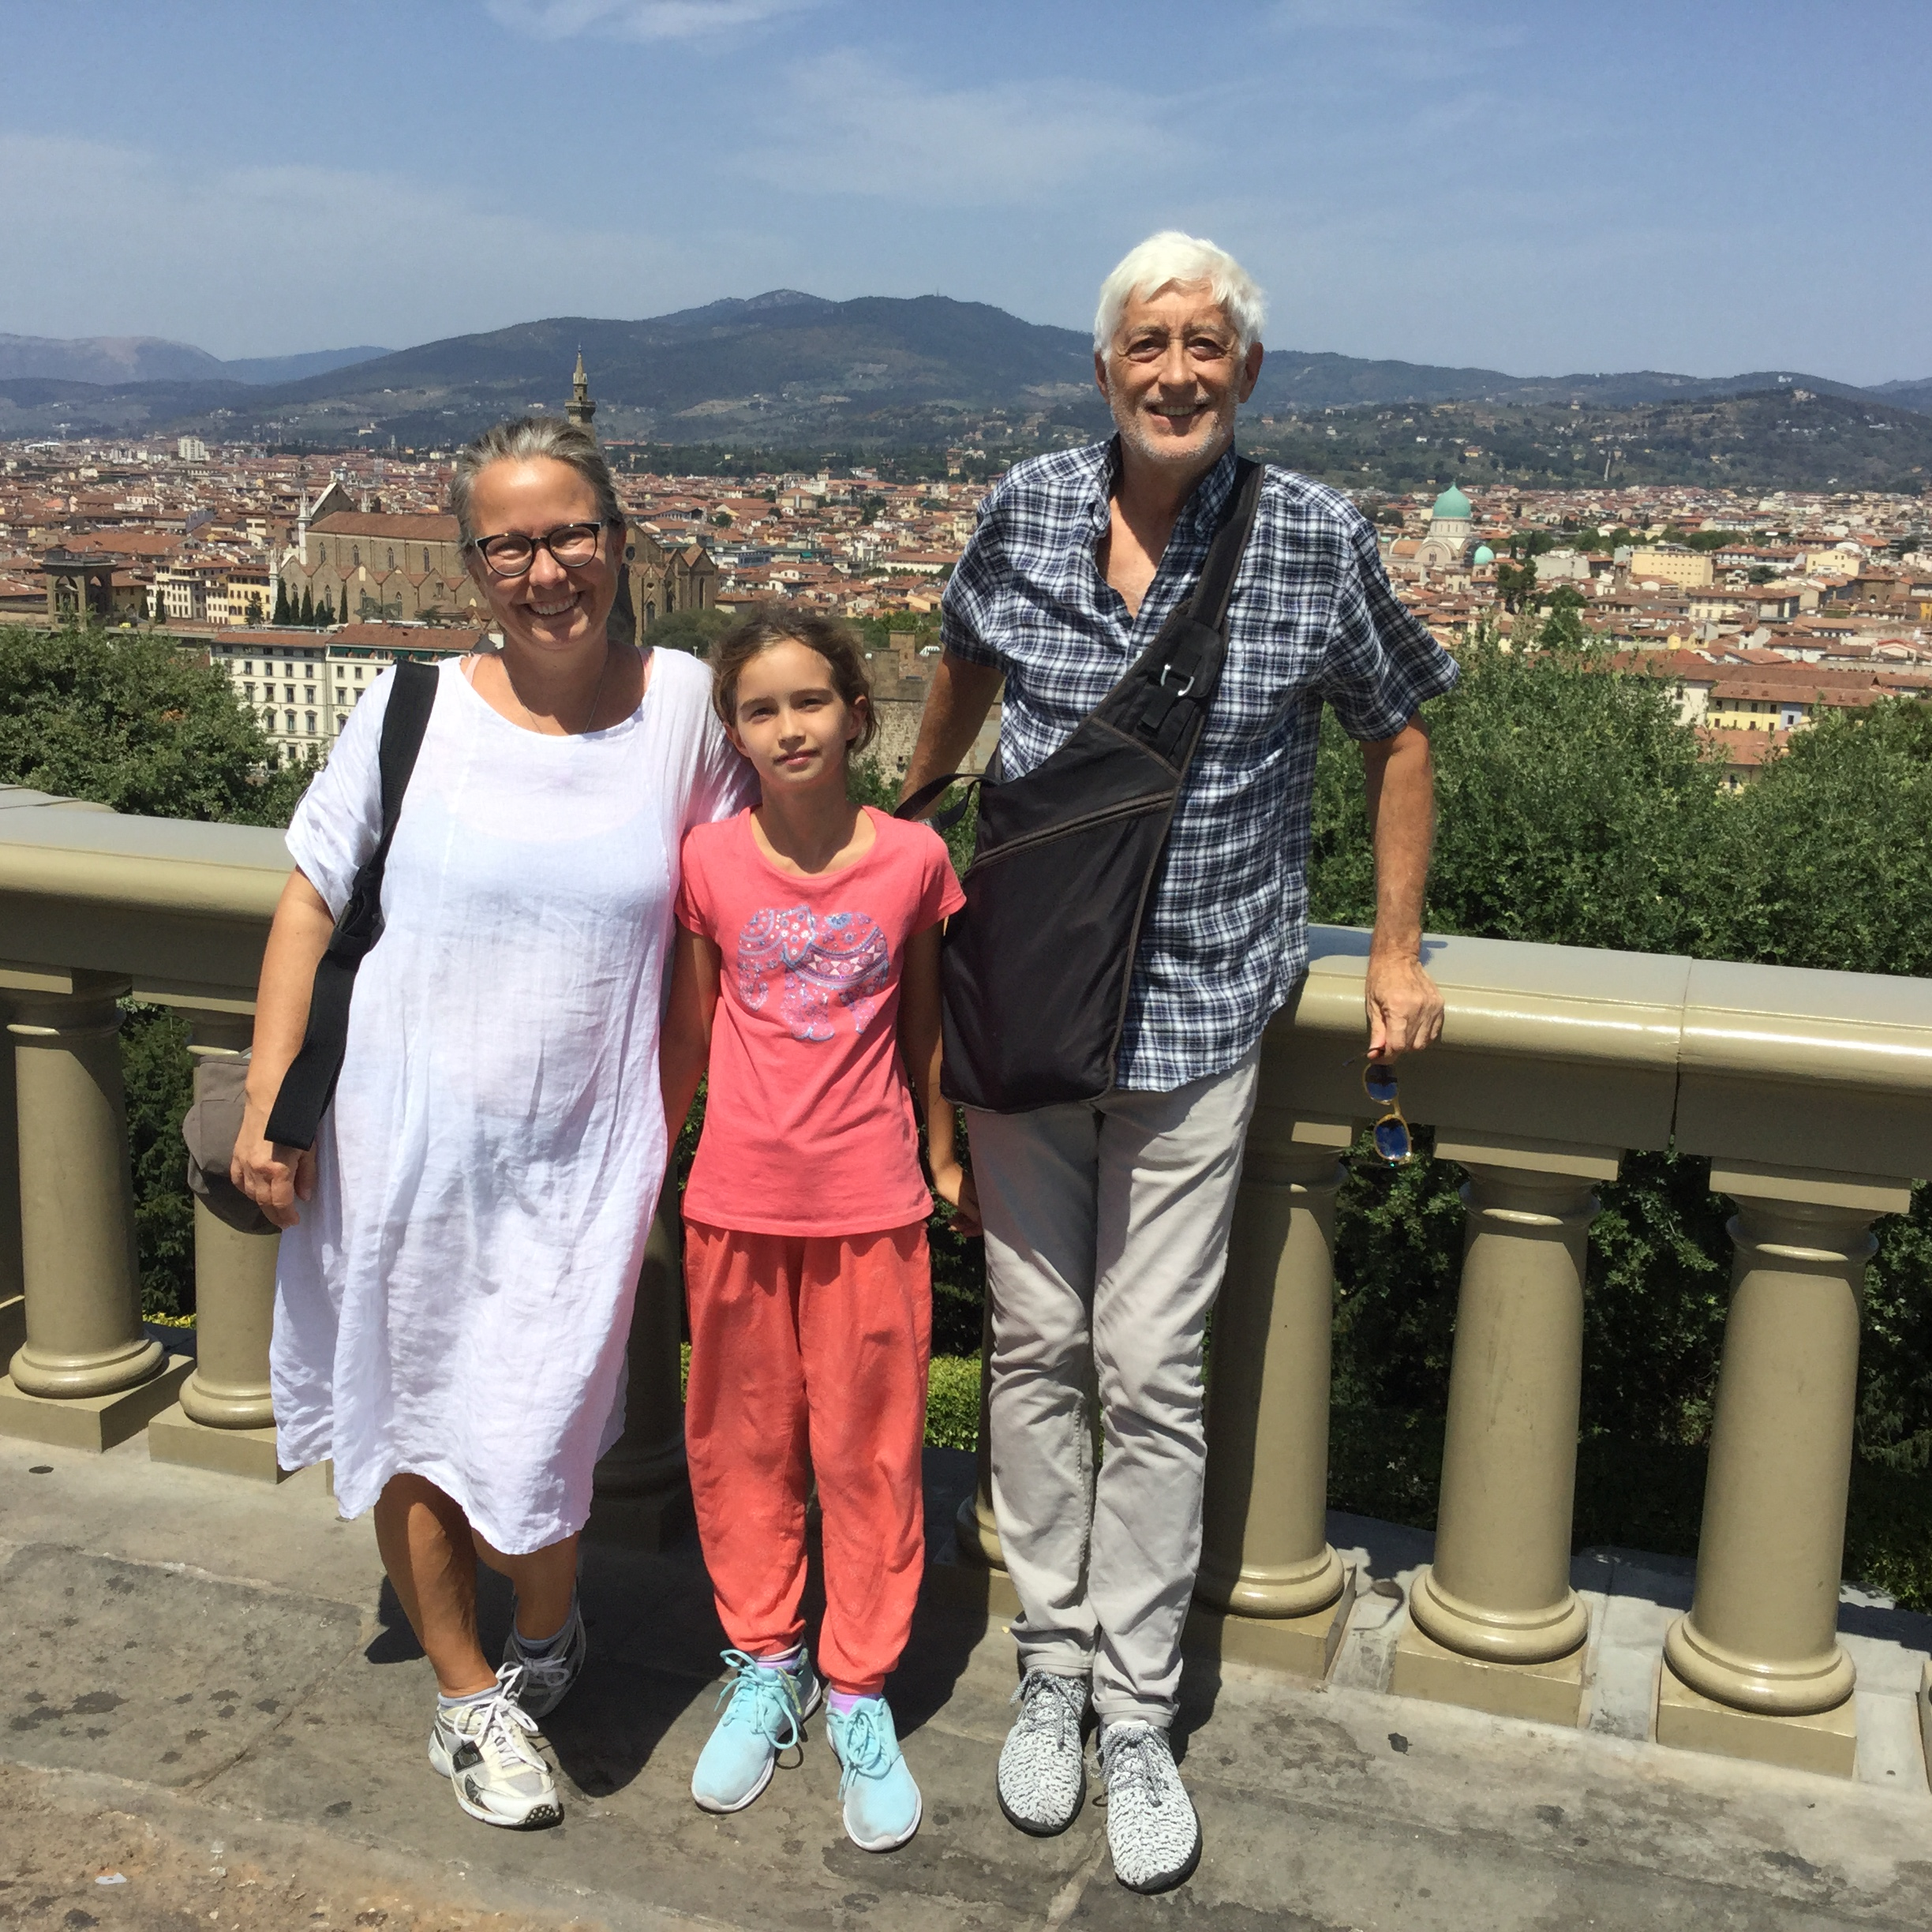 Happy traveling family at Piazza Michelangelo.